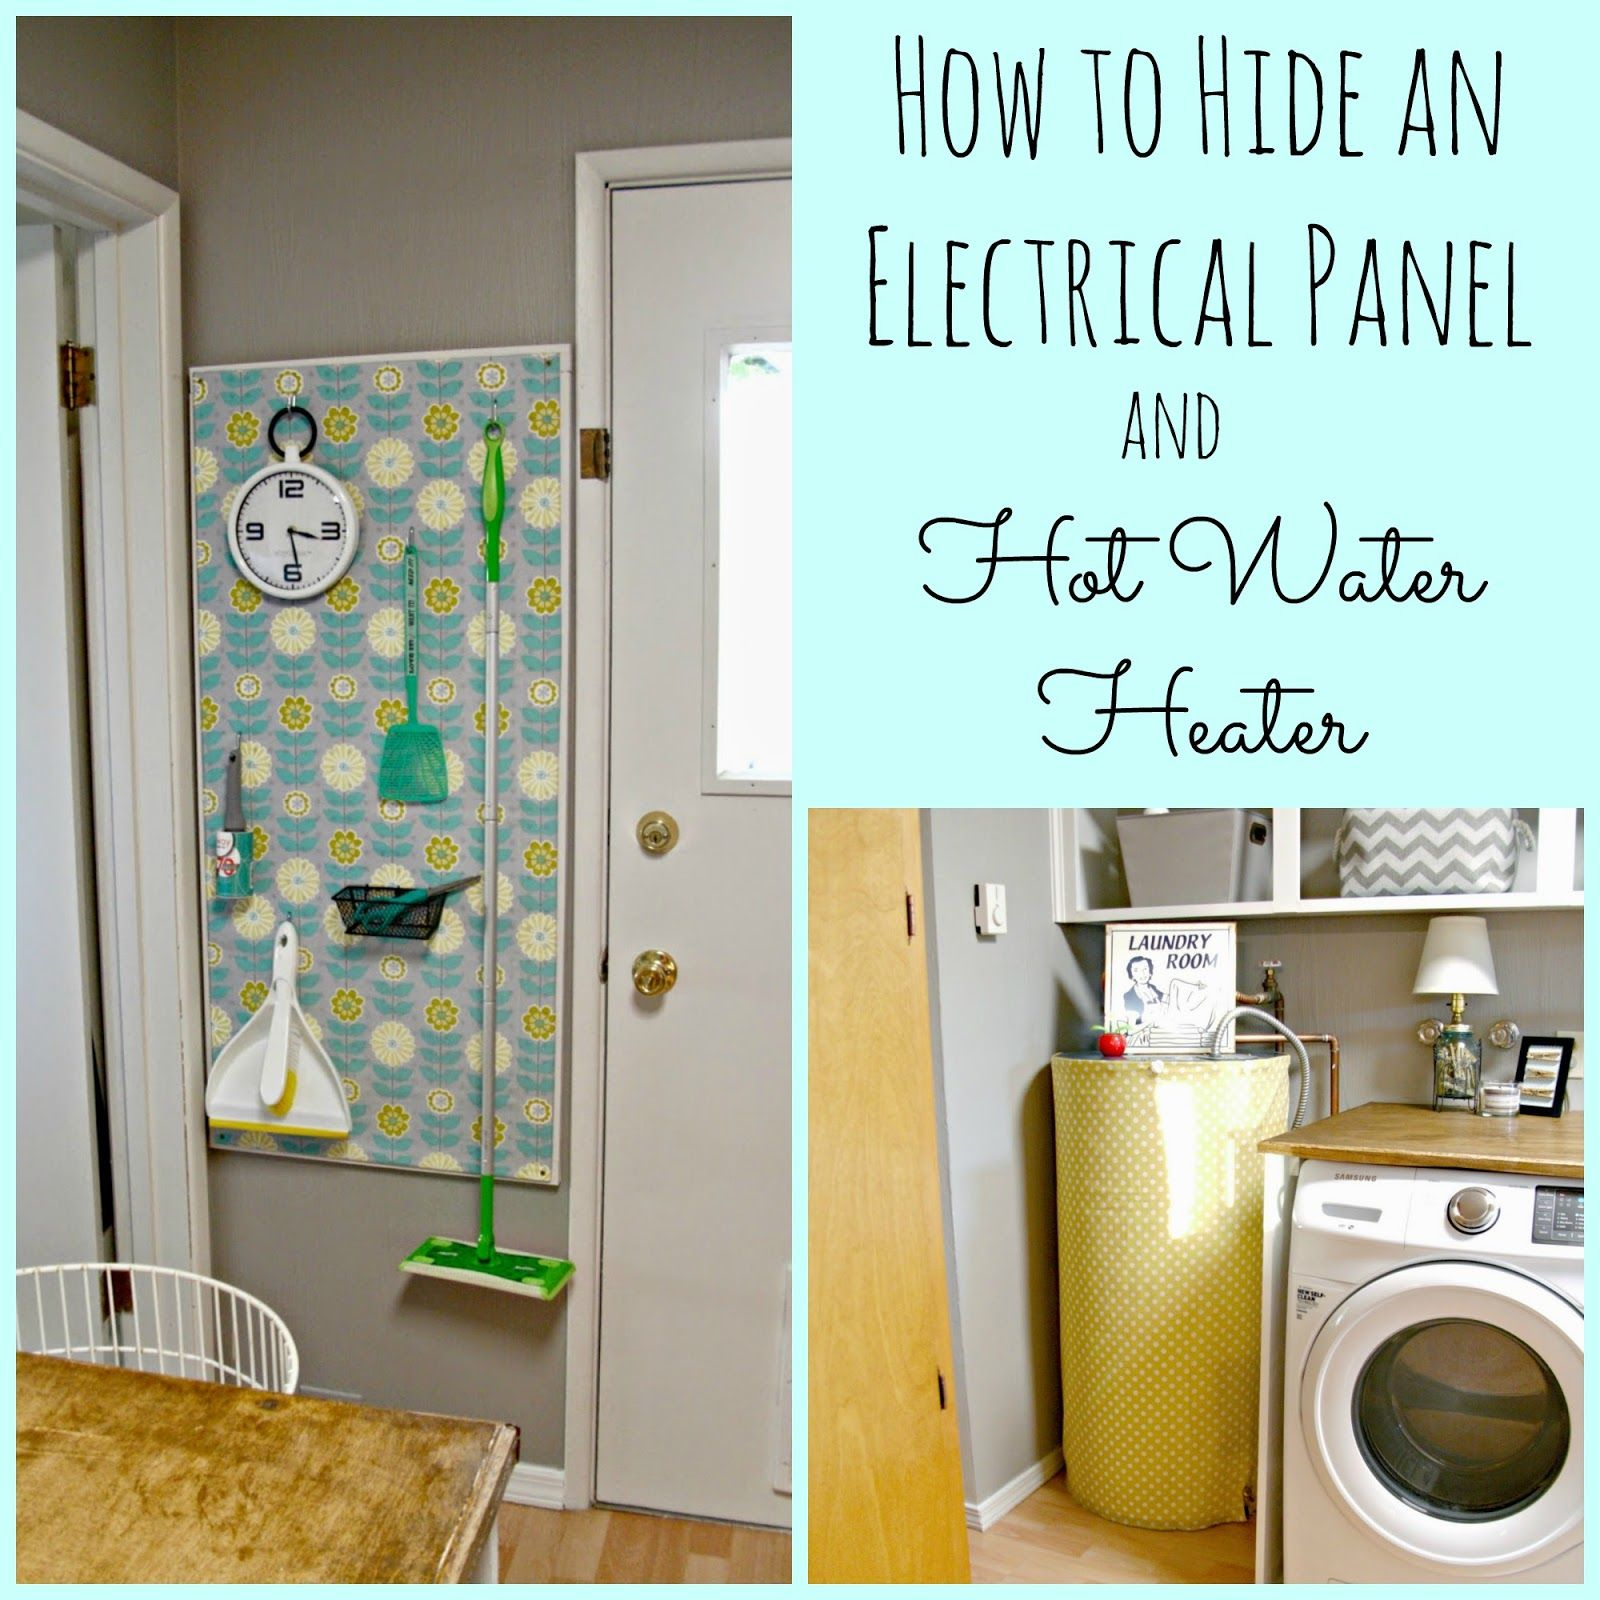 Laundry Room Redo  Hiding the Electrical Panel & Hot Water Heater is part of Laundry room inspiration, Laundry room makeover, Room redo, Hide electrical panel, Electrical panel, Hide water heater - Here is an easy way to hide an ugly electrical panel and hot water heater for very little money!